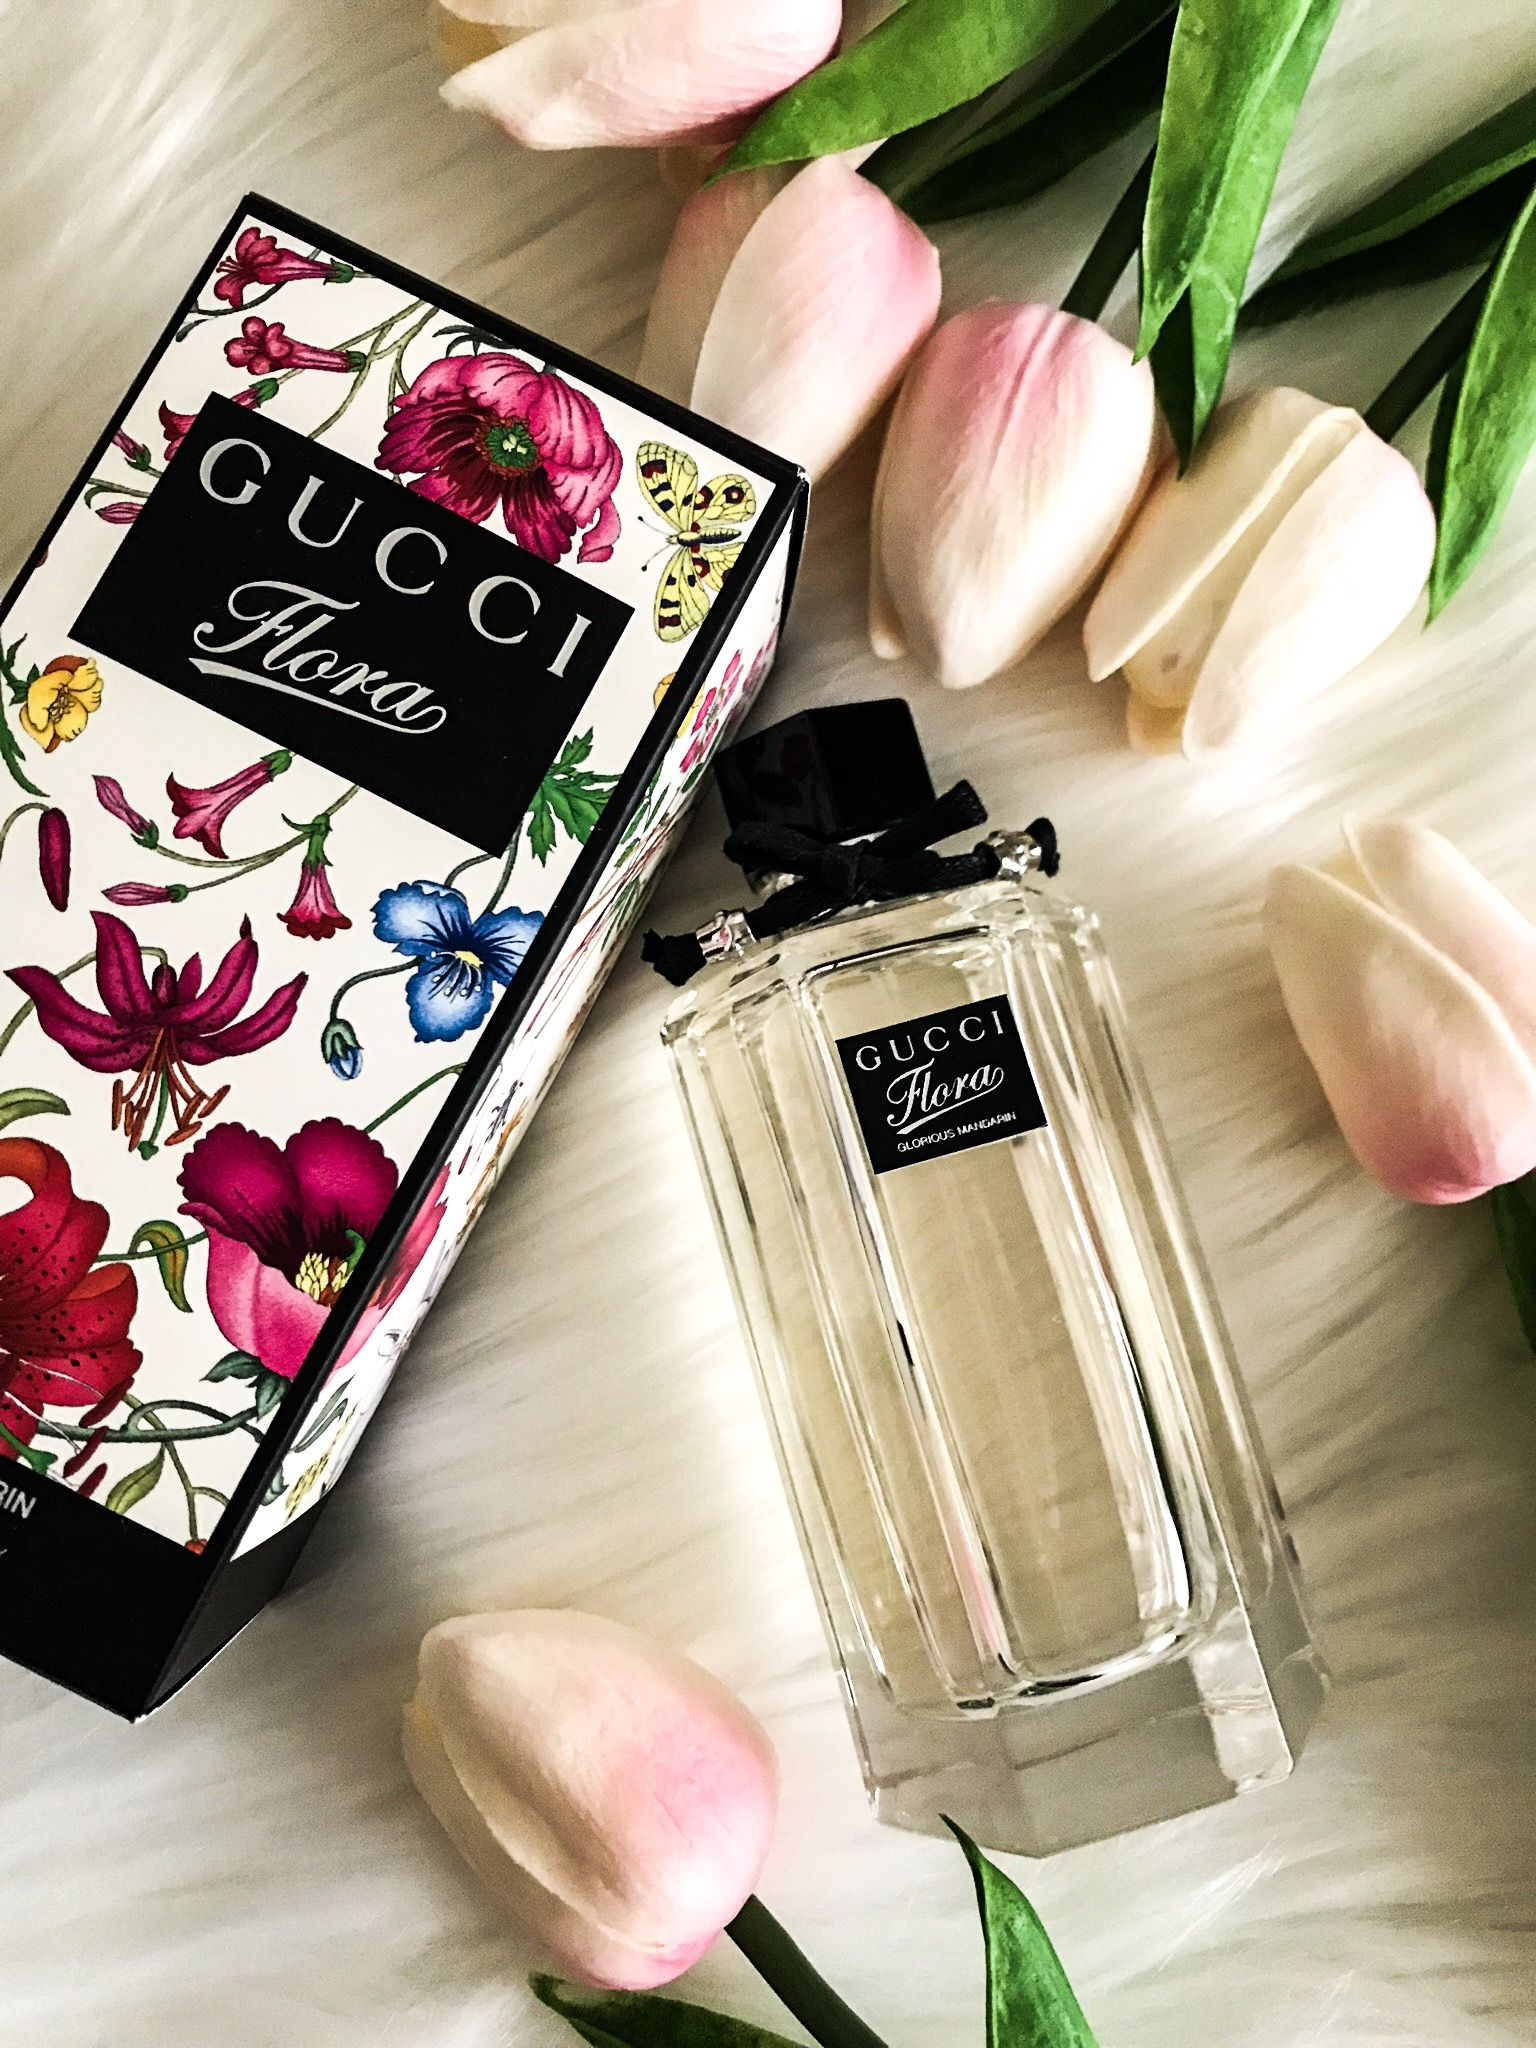 4ed9bef452a Gucci Flora Glorious Mandarin by Gucci Eau De Toilette Spray for Women (3.4  oz)